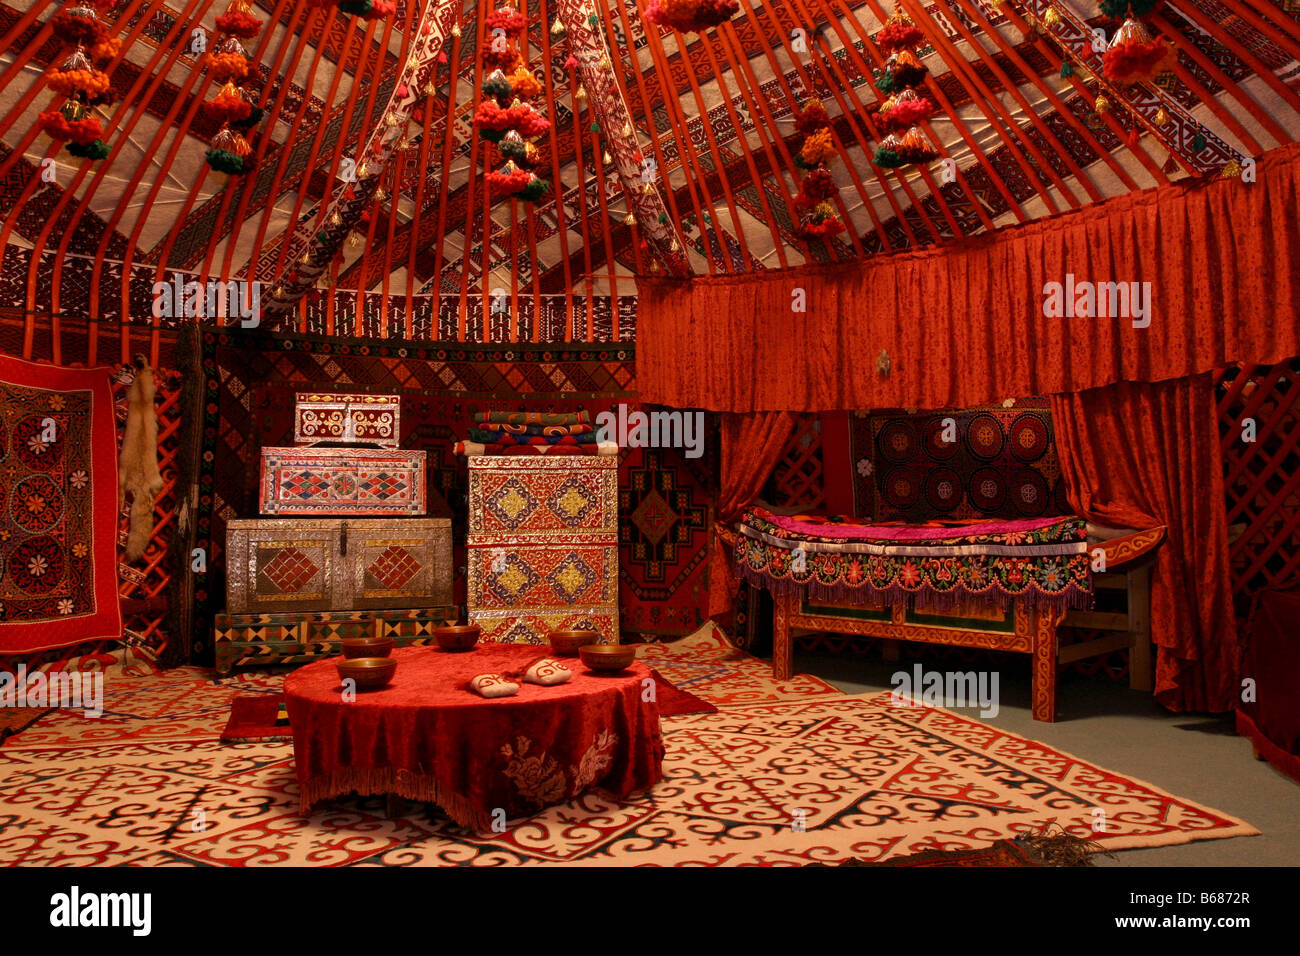 Merveilleux Internal Furniture Of Yurt National Kazakh Dwelling Astana City Kazakhstan